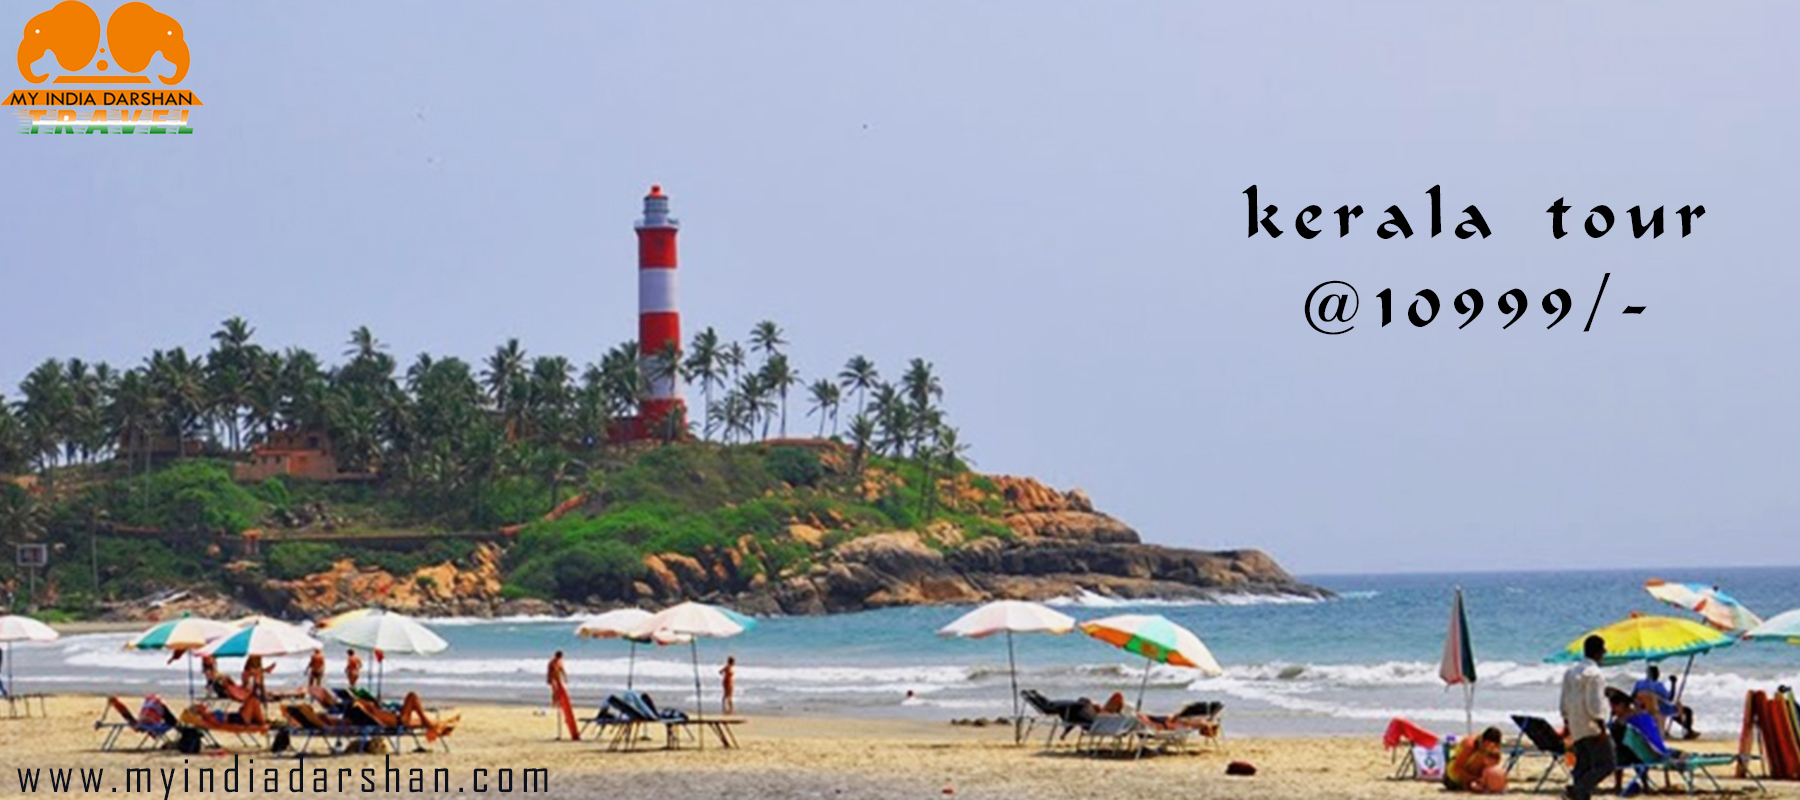 -Kerala Tour | MY INDIA DARSHAN